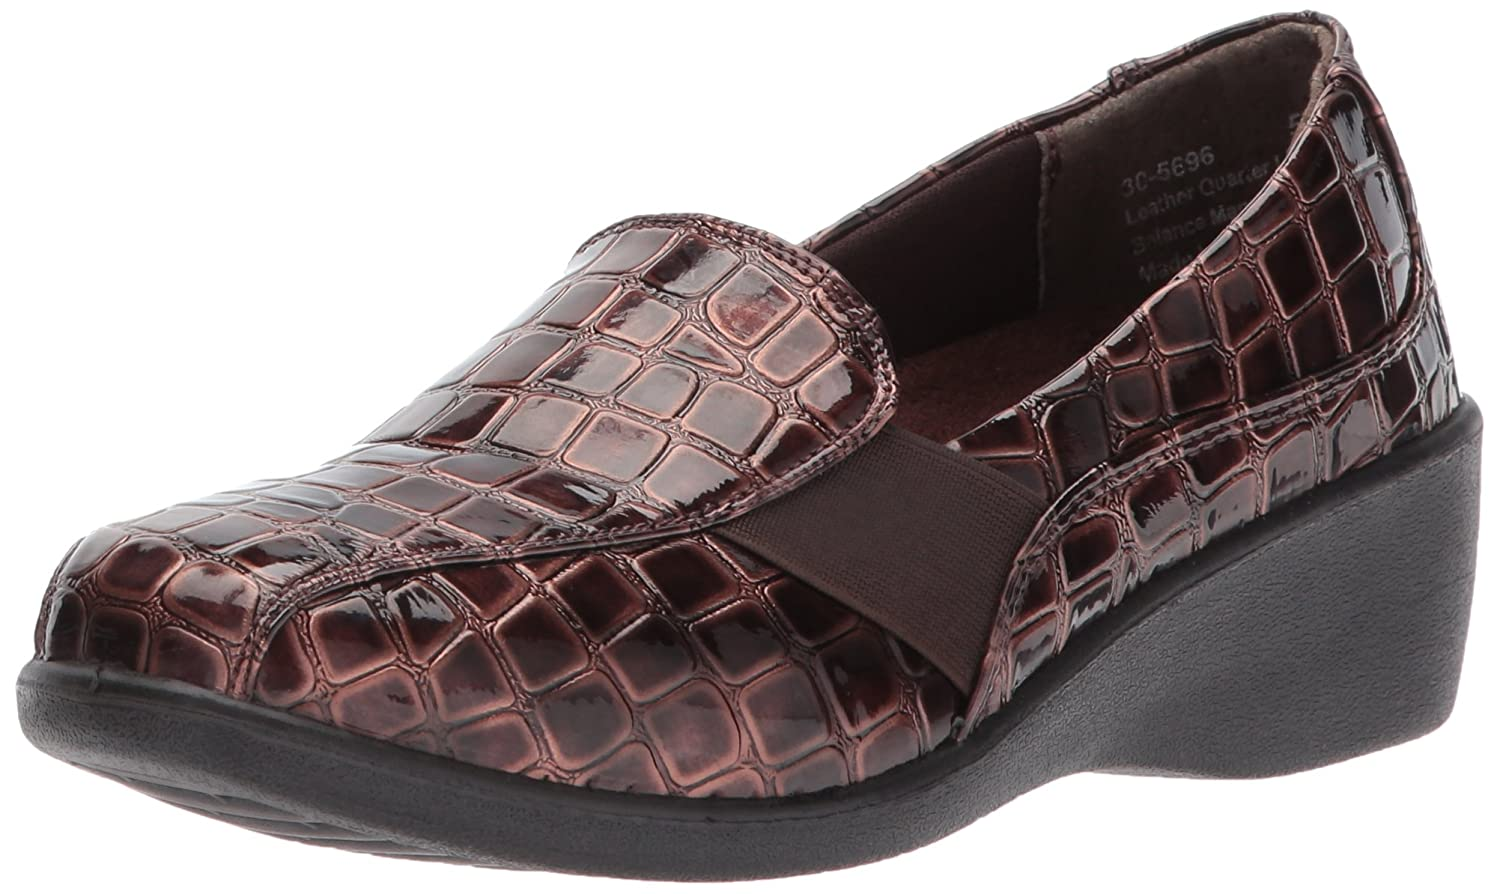 Easy B071J7YLRJ Street Women's Dolores Flat B071J7YLRJ Easy 6 B(M) US|Brown Patent Crocodile c6194f